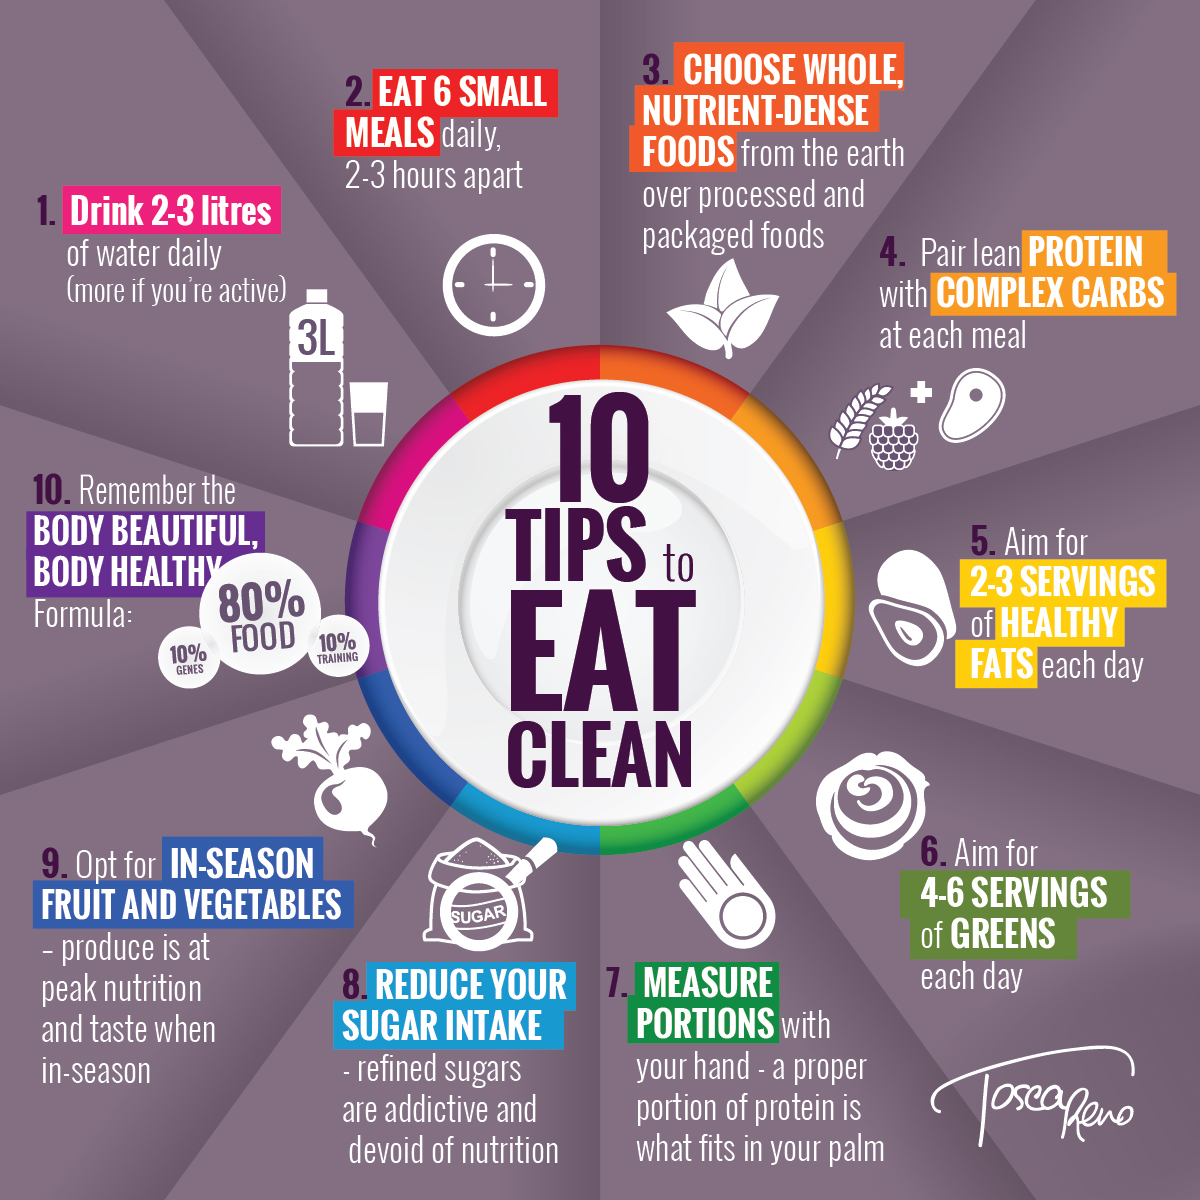 How to Eat Clean: 10 Tips for Healthy Weight Loss